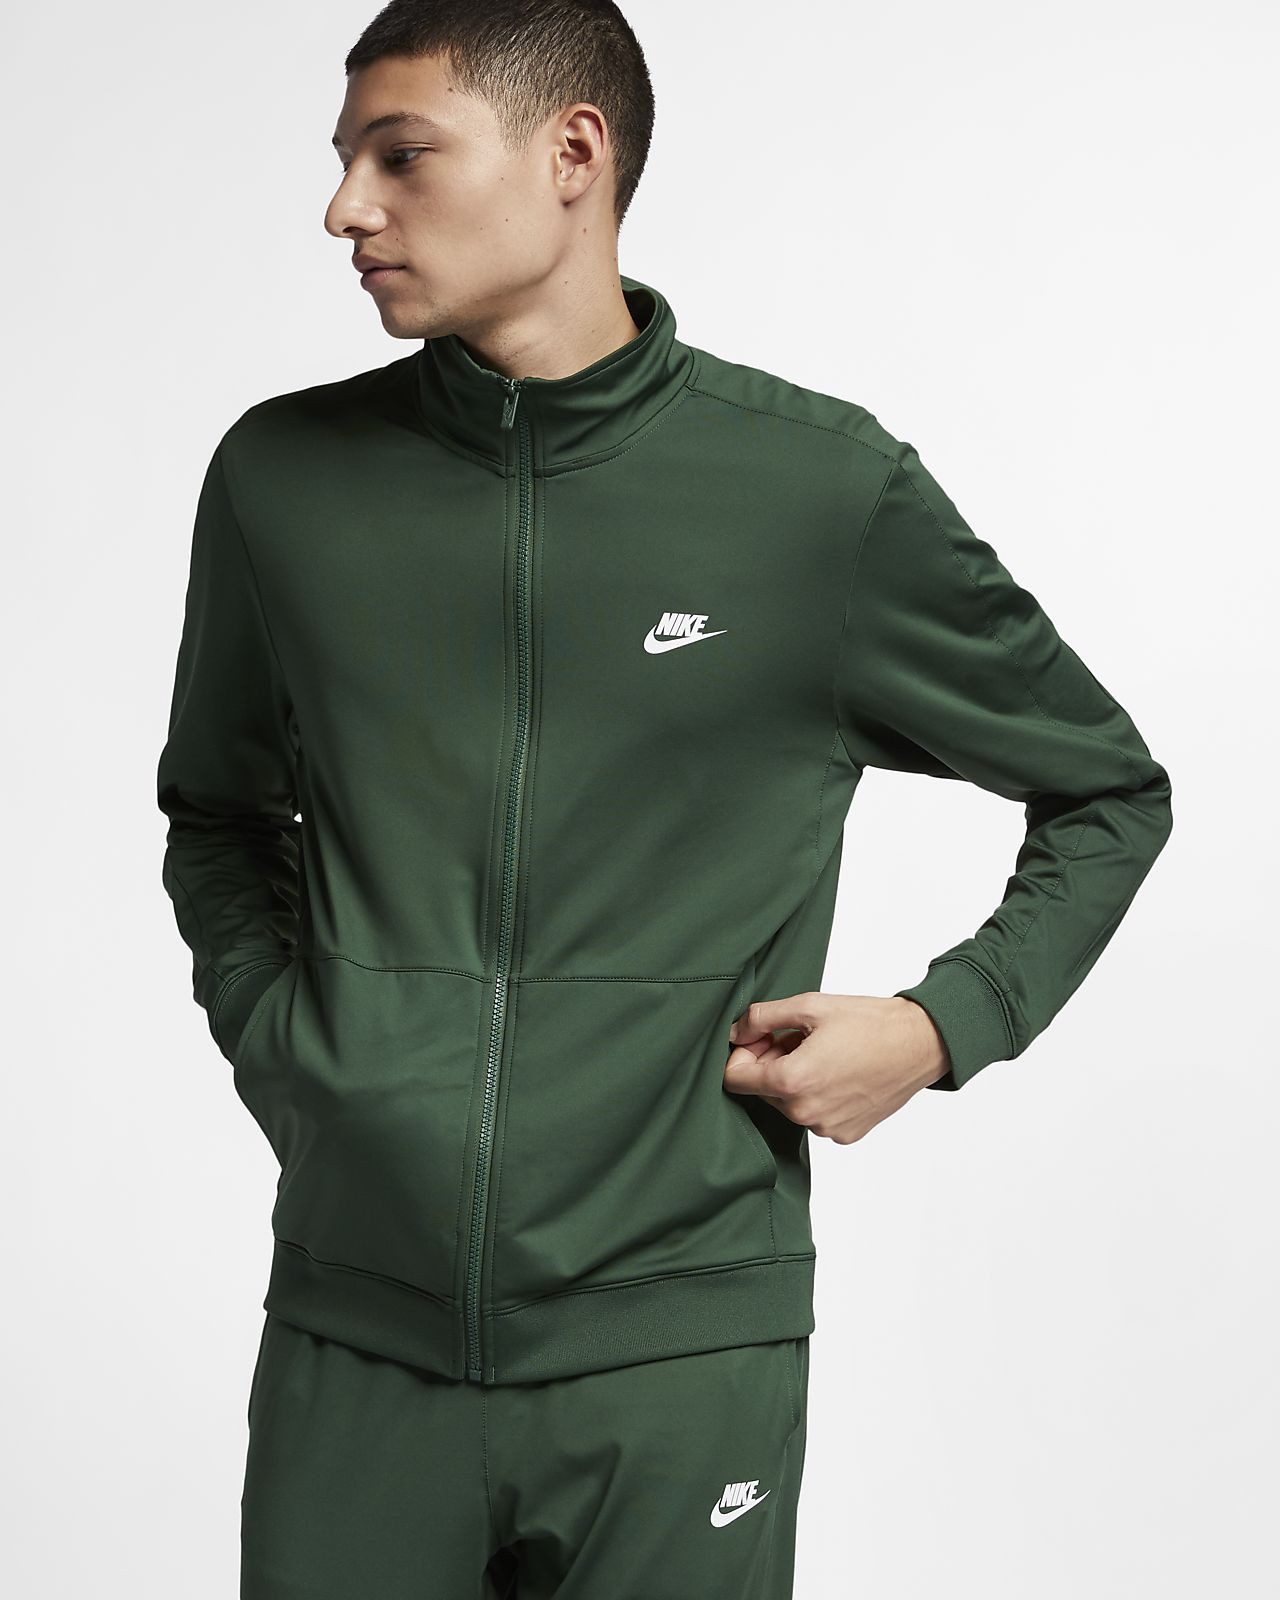 6fabcbd39b45 Low Resolution Nike Sportswear Men s Tracksuit Nike Sportswear Men s  Tracksuit